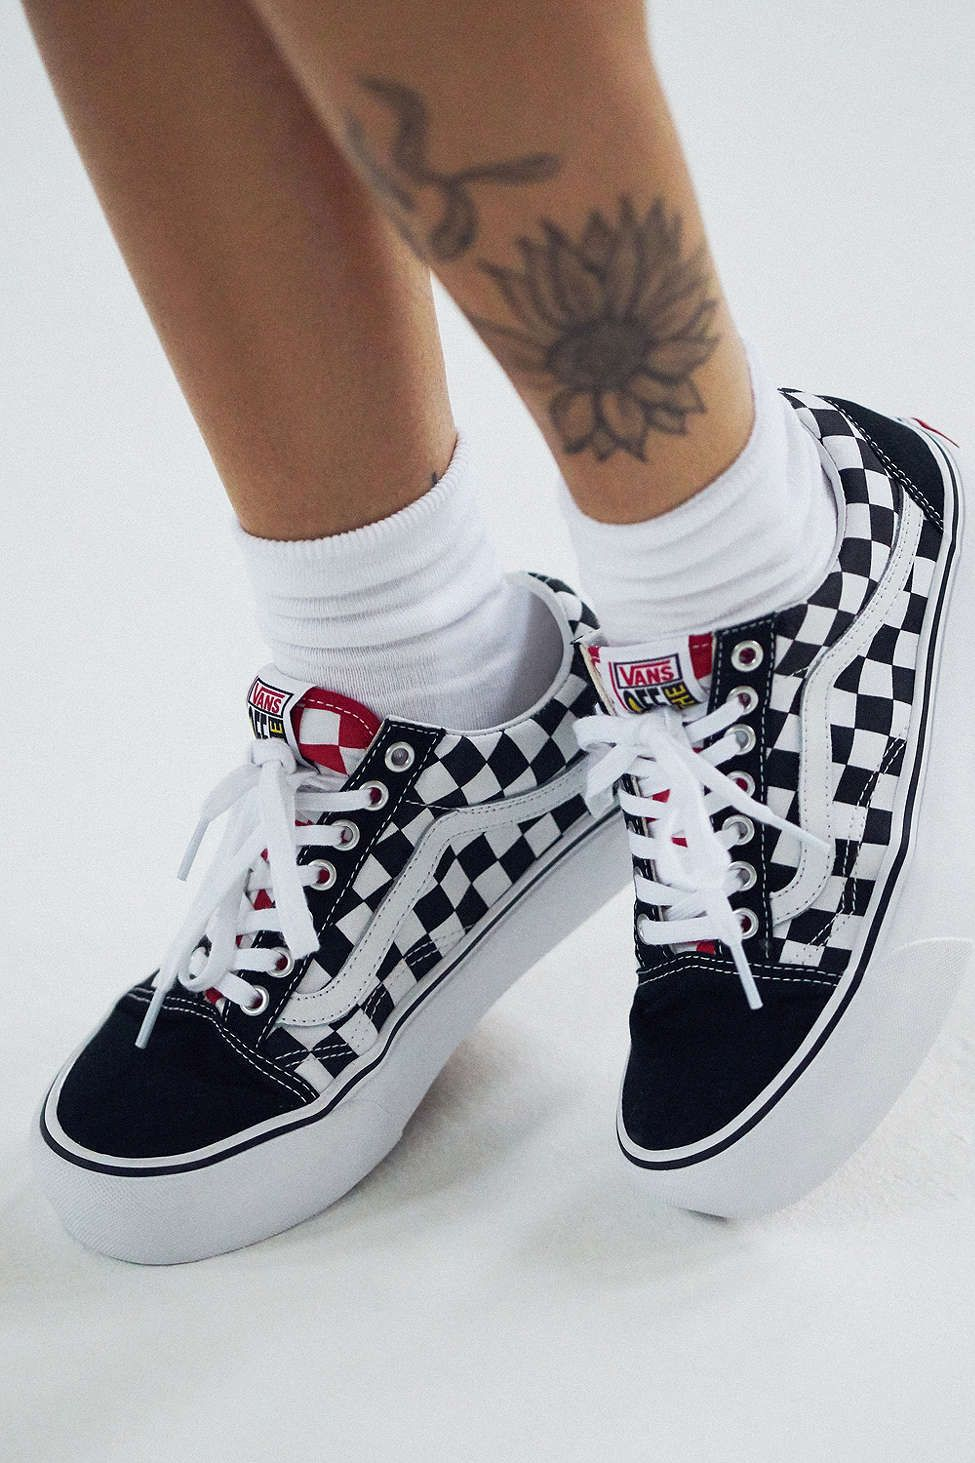 vans old skool plataform cuero